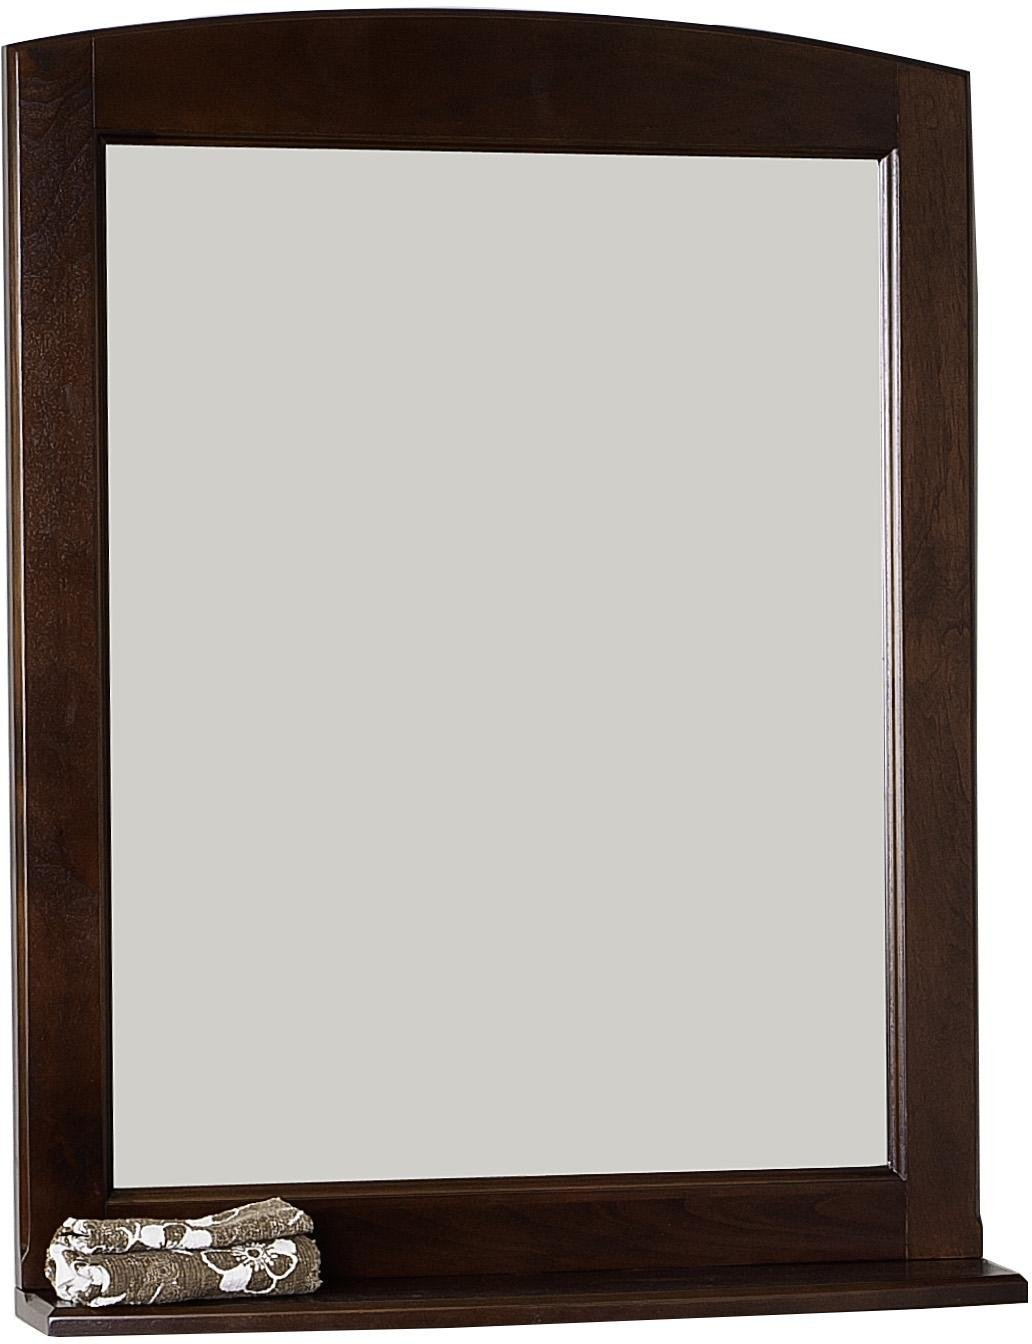 American Imaginations AI-107-71 Traditional Birch Wood-Veneer Wood Mirror, 24-Inch x 32-Inch, Walnut Finish